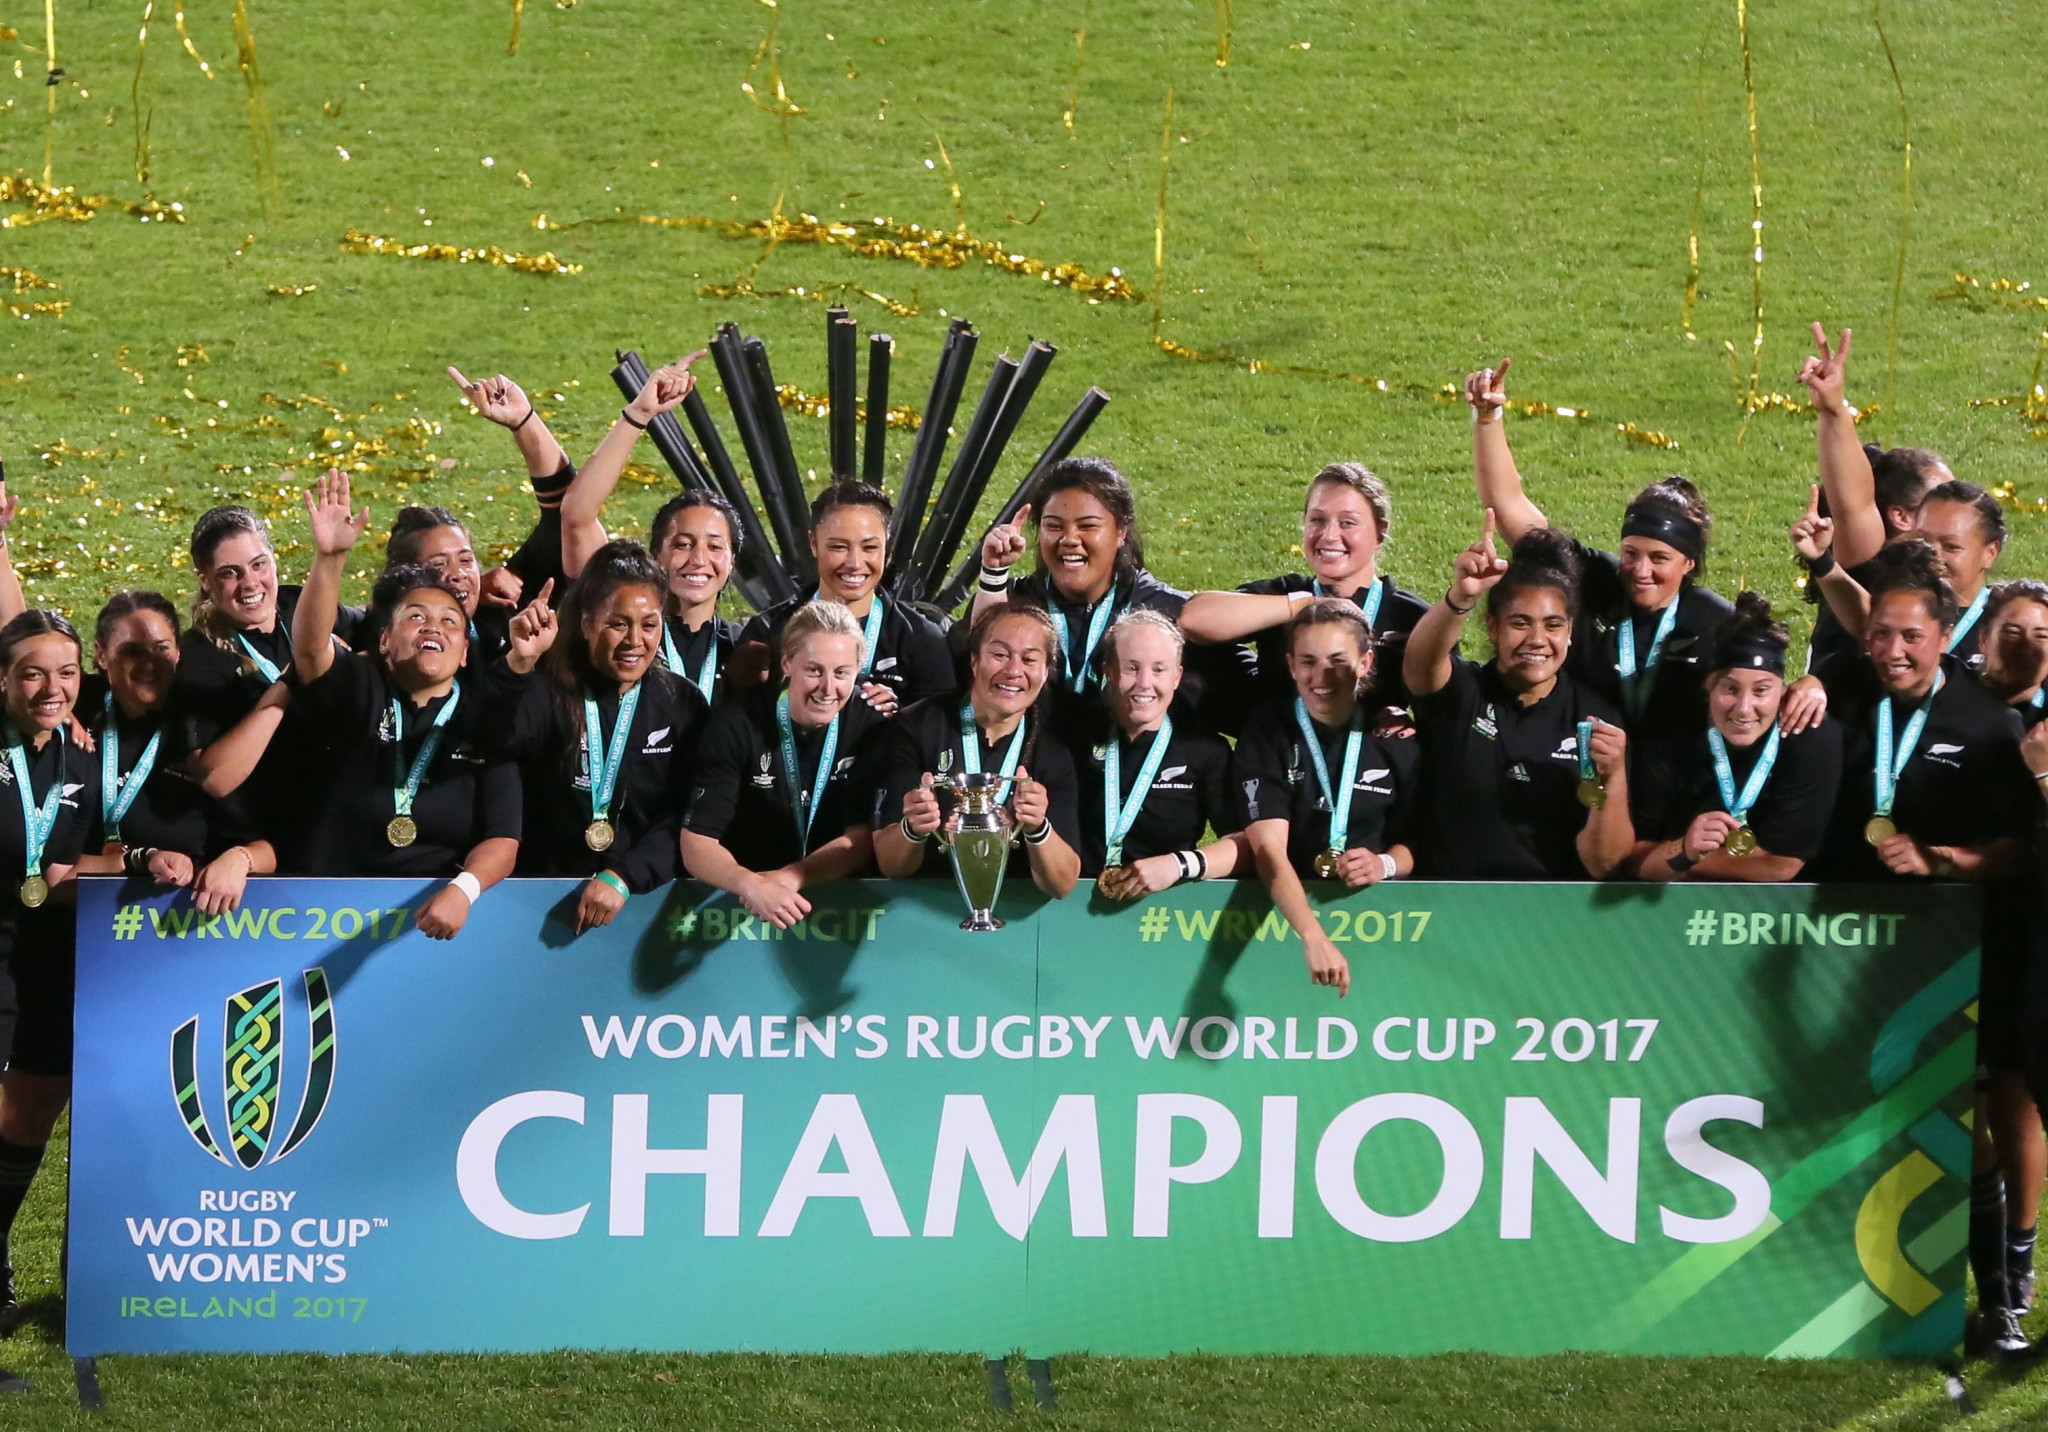 New Zealand won the Women's Rugby World Cup in Ireland last year for a record fifth time and will now the chance to defend the title before their home fans in 2021 ©Getty Images